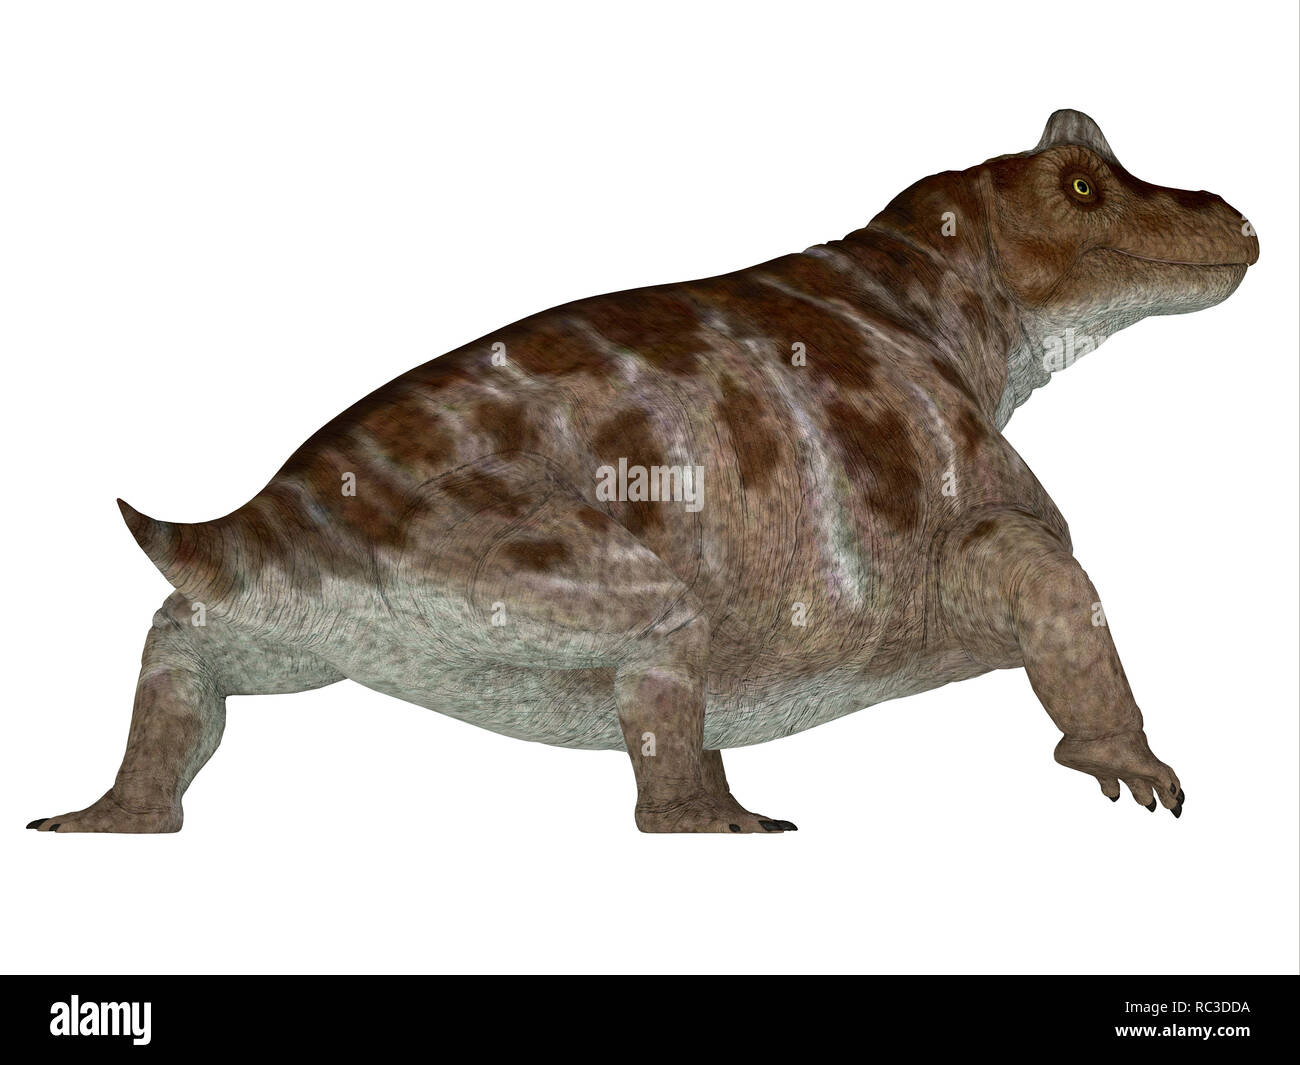 Keratocephalus Dinosaur - Keratocephalus was a primitive herbivore dinosaur that lived in South Africa during the Permian Period. - Stock Image